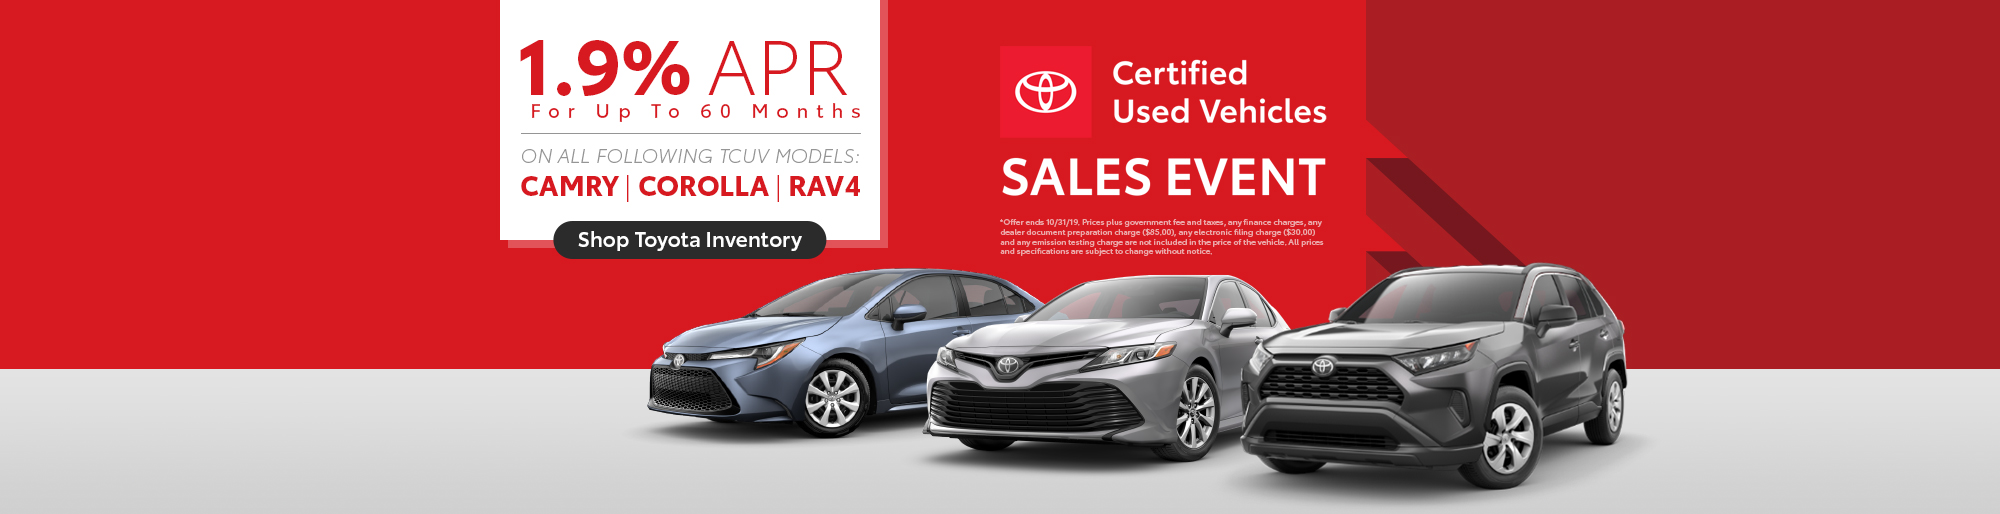 Livermore Toyota | New Toyota Dealership in Livermore, CA